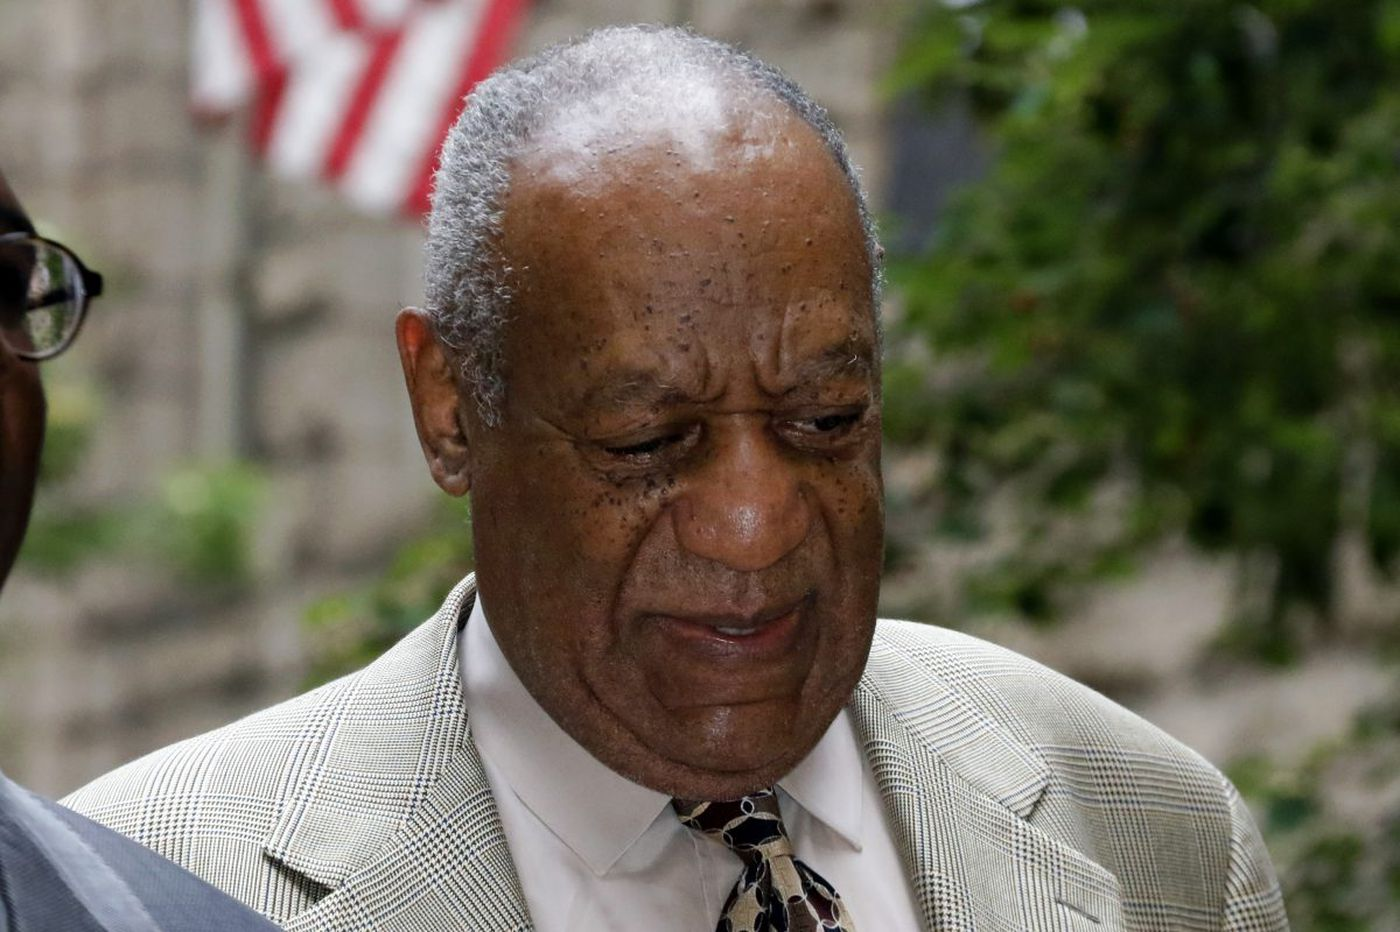 We cannot deny the racial aspect of the Cosby sex assault trial